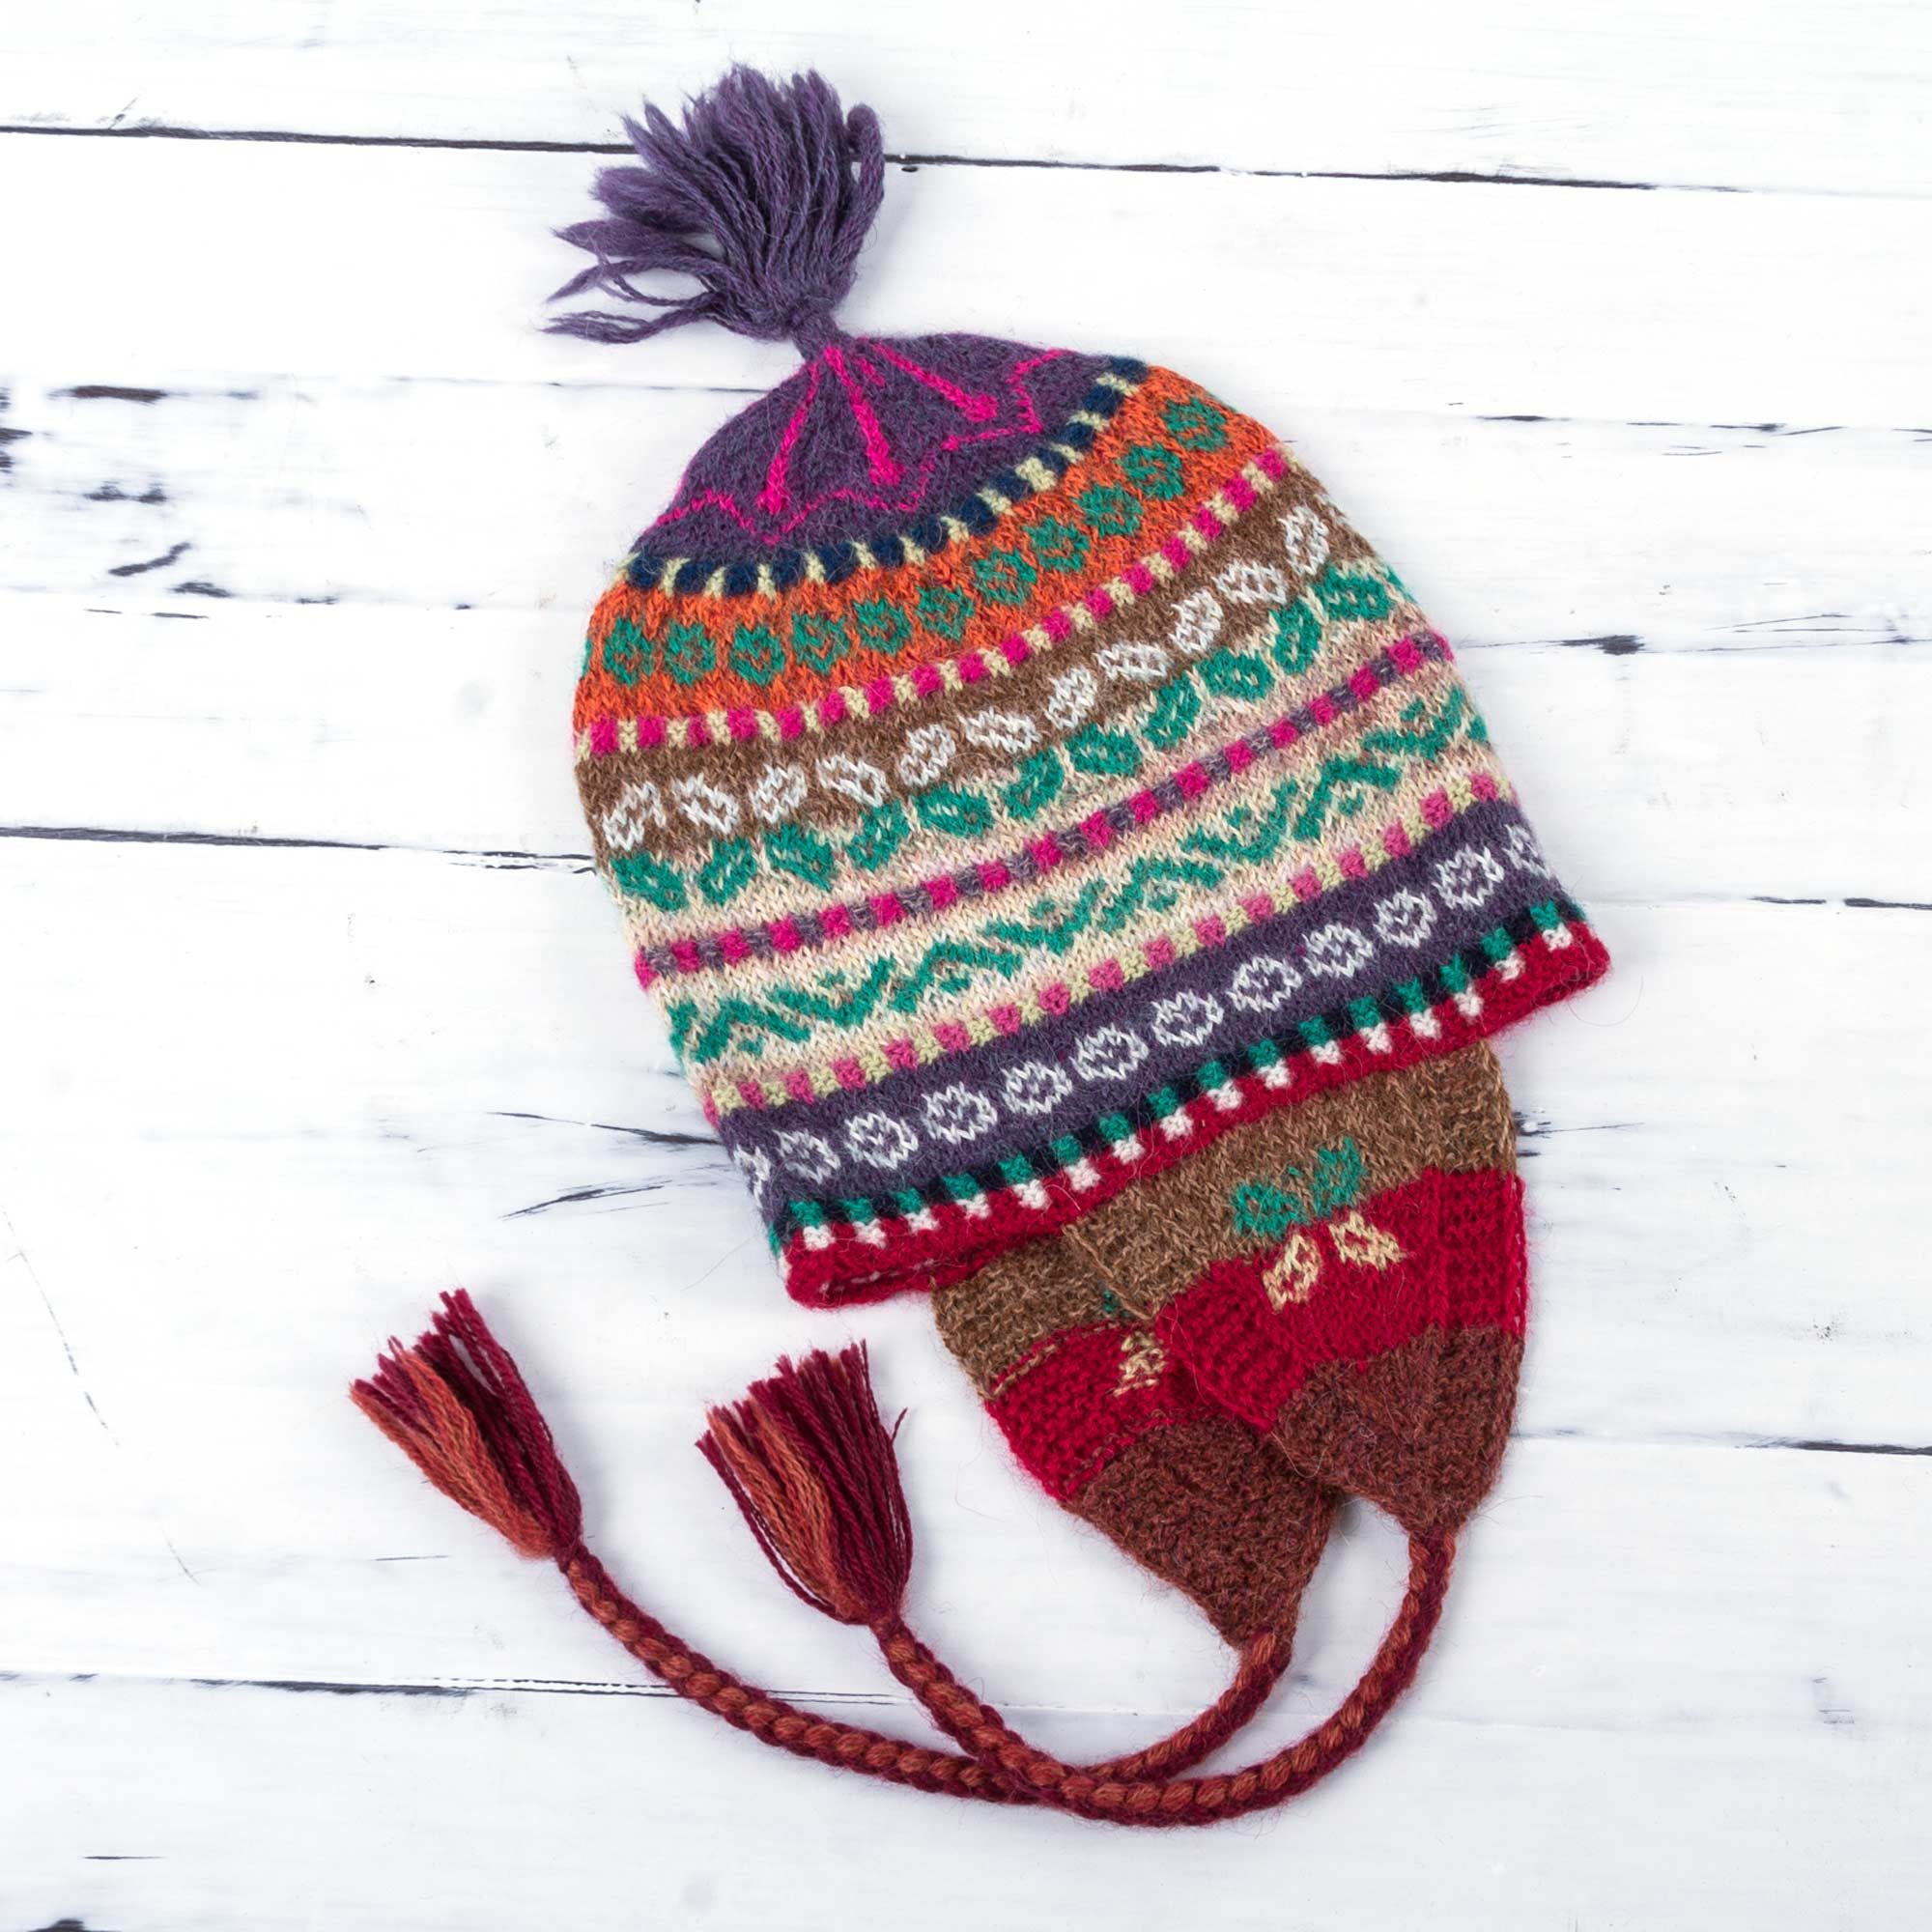 9af6ffe6db5 Hand Knitted Andean Chullo Hat in Colorful 100% Alpaca Wool - Fiesta ...